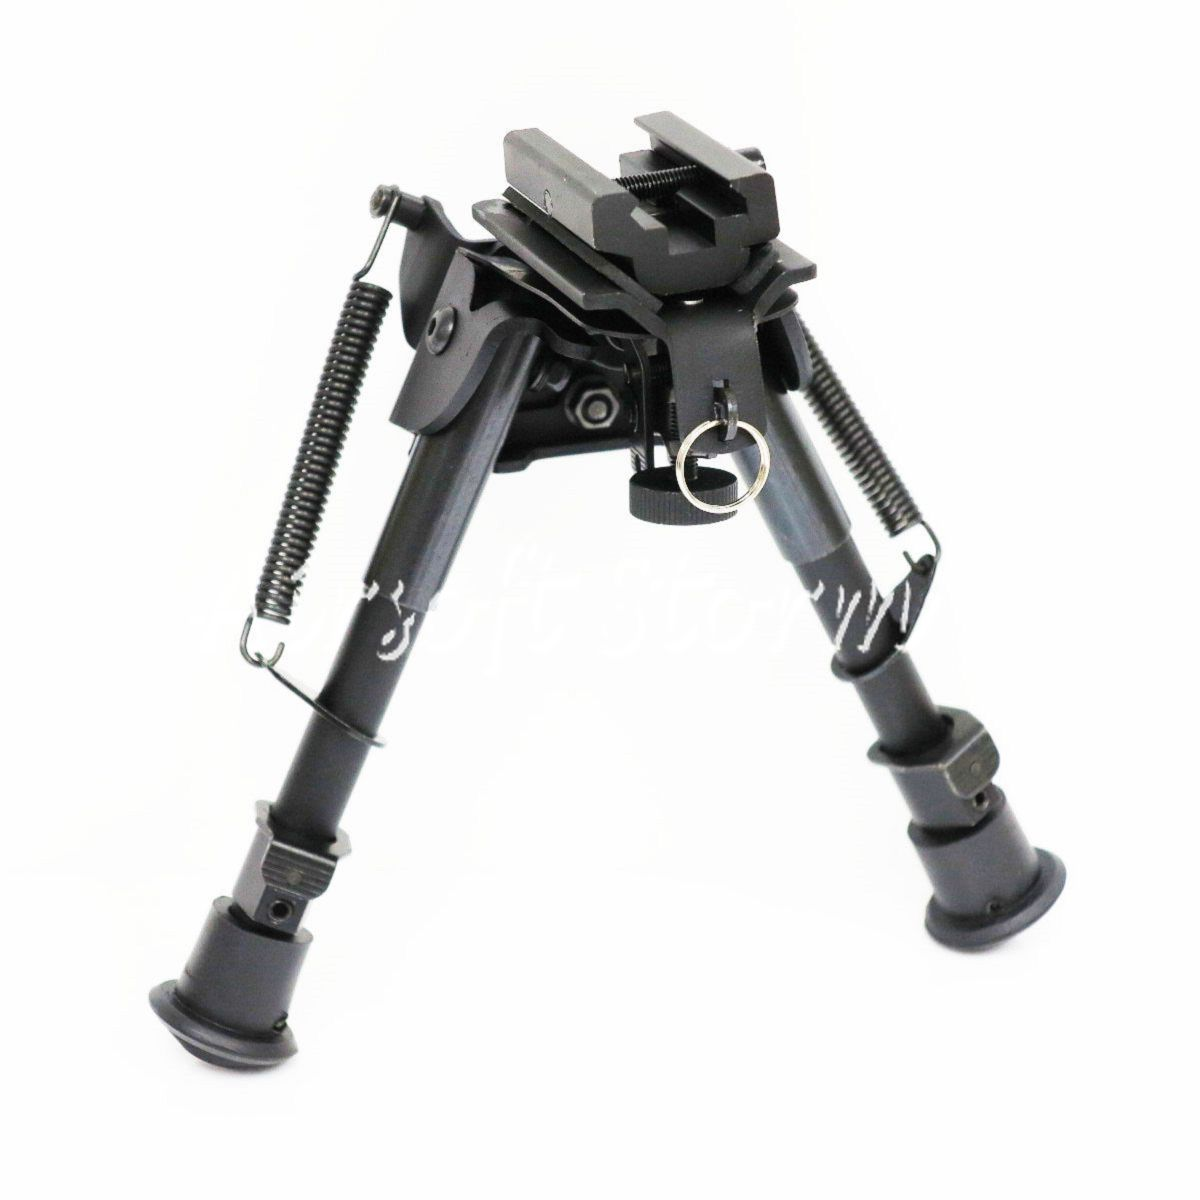 "Shooting Gear 6-9"" Spring Rifle Shooter Bipod w/20mm RIS Rail Adaptor"